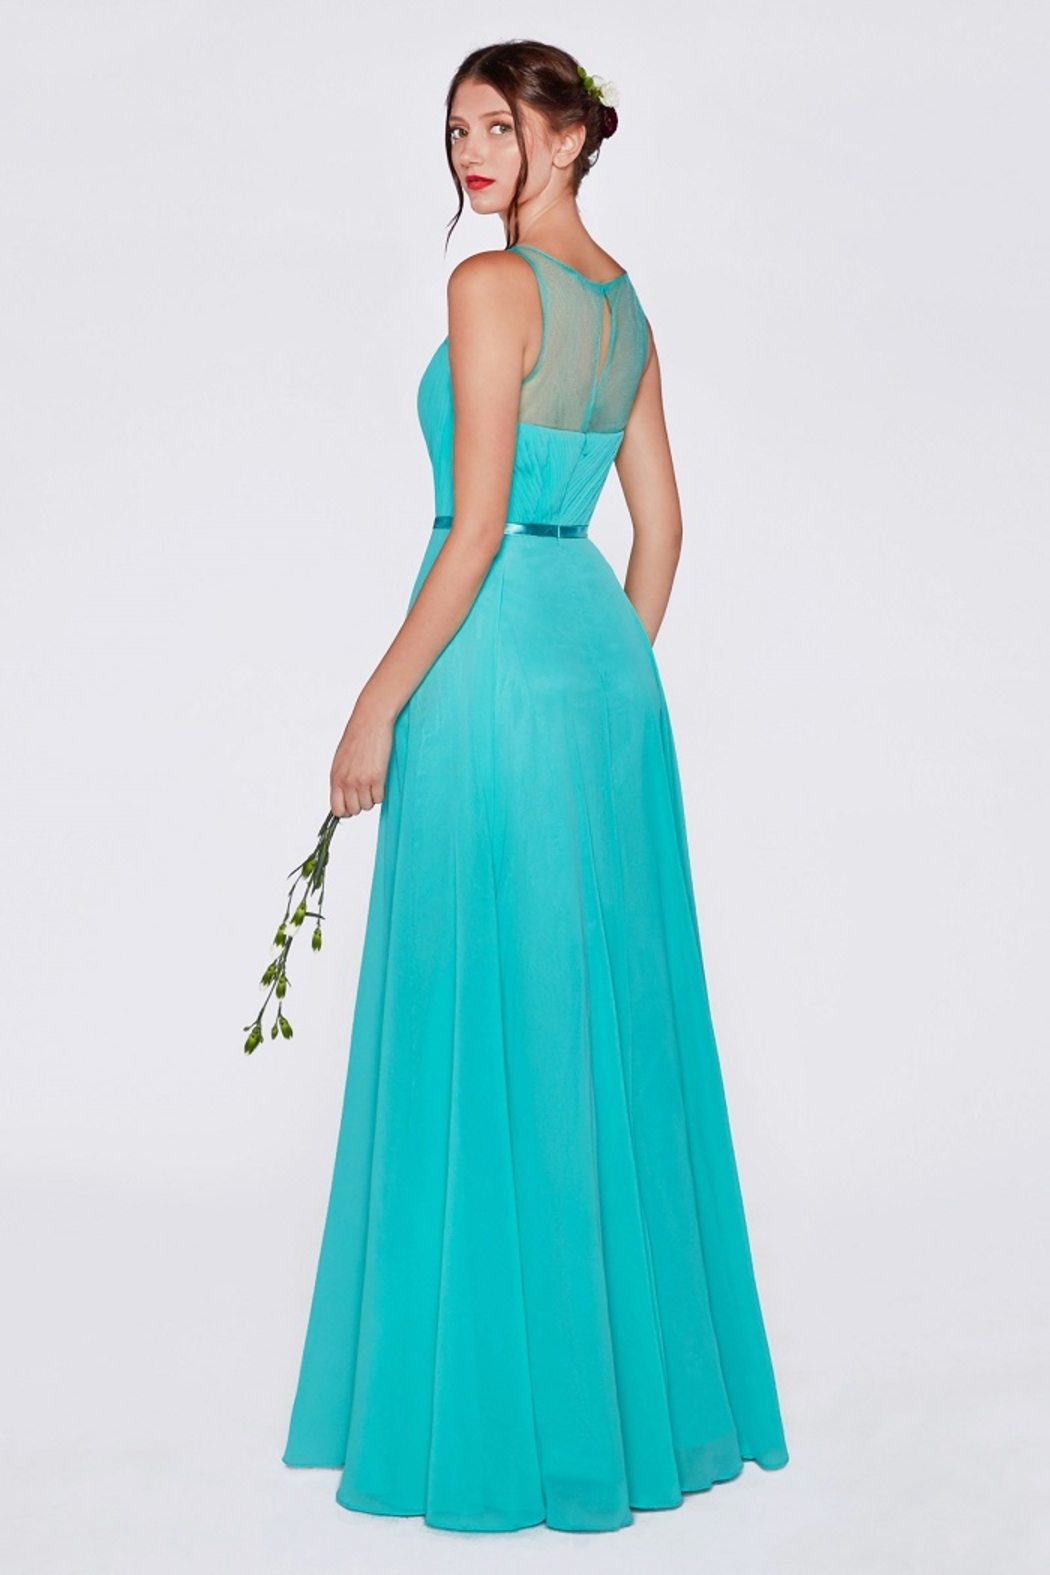 Cinderella Divine Mint Illusion V-Neck Long Formal Dress - Front Full Image